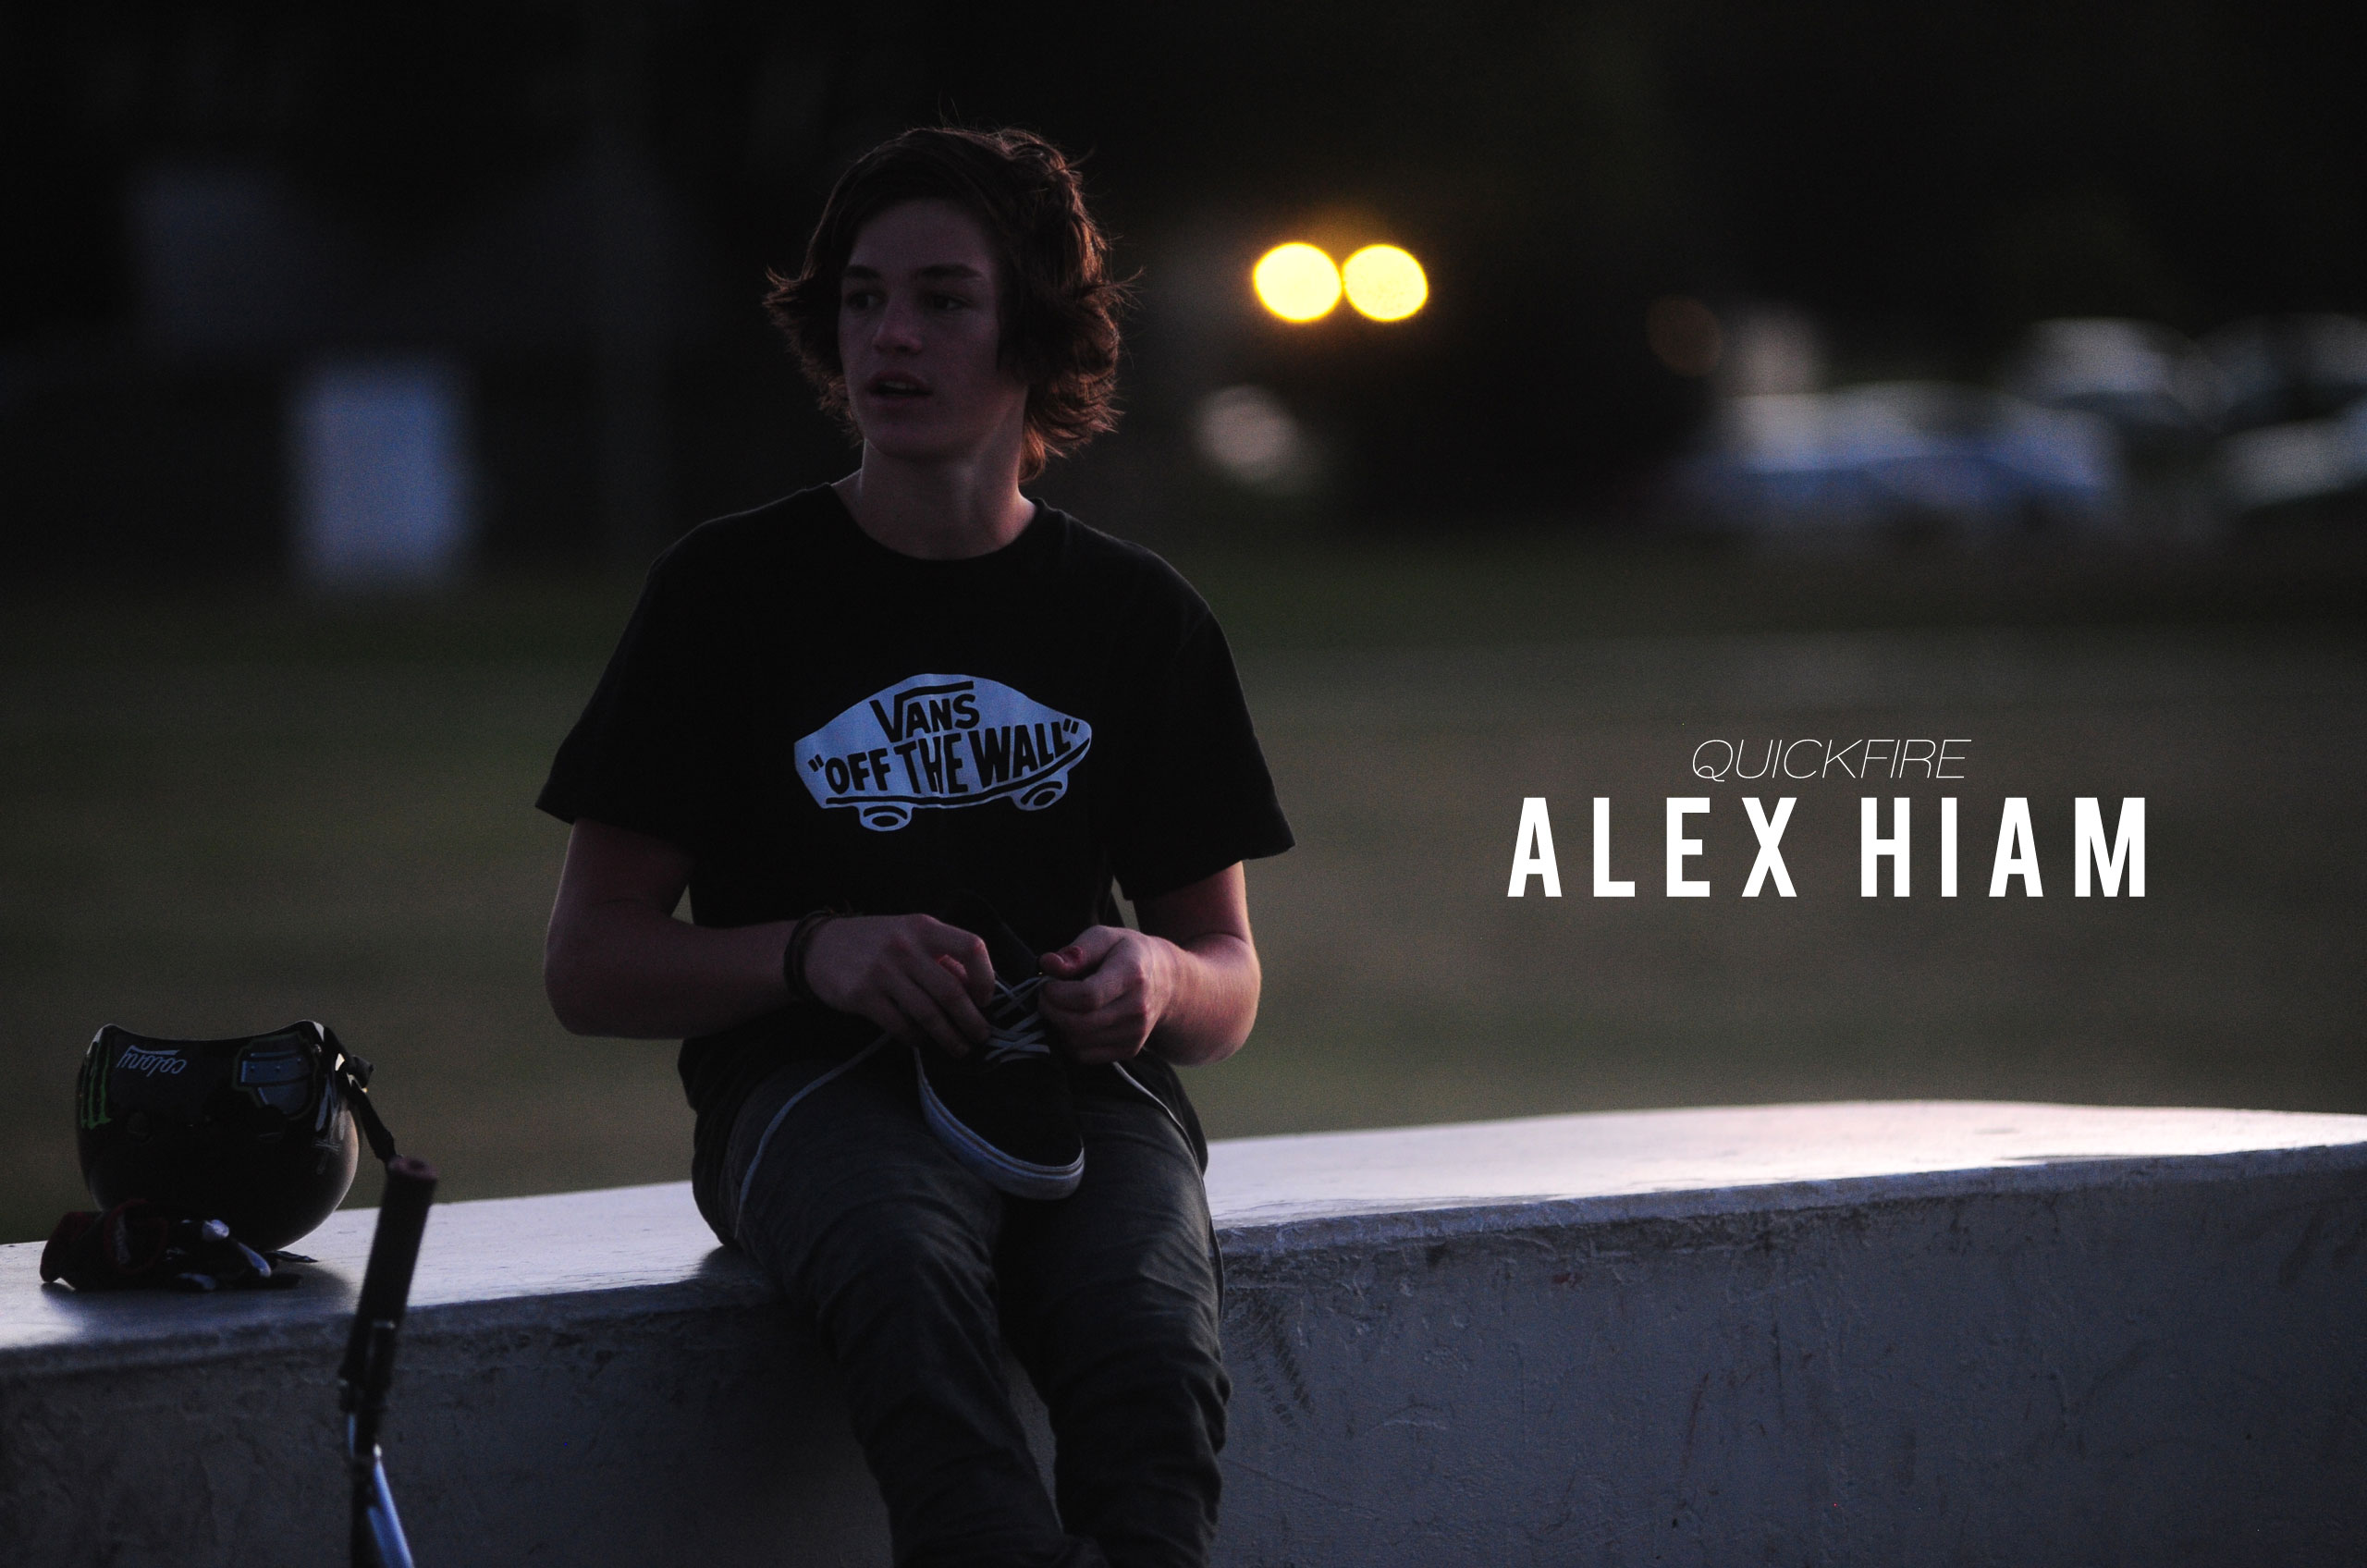 Quickfire – Alex Hiam